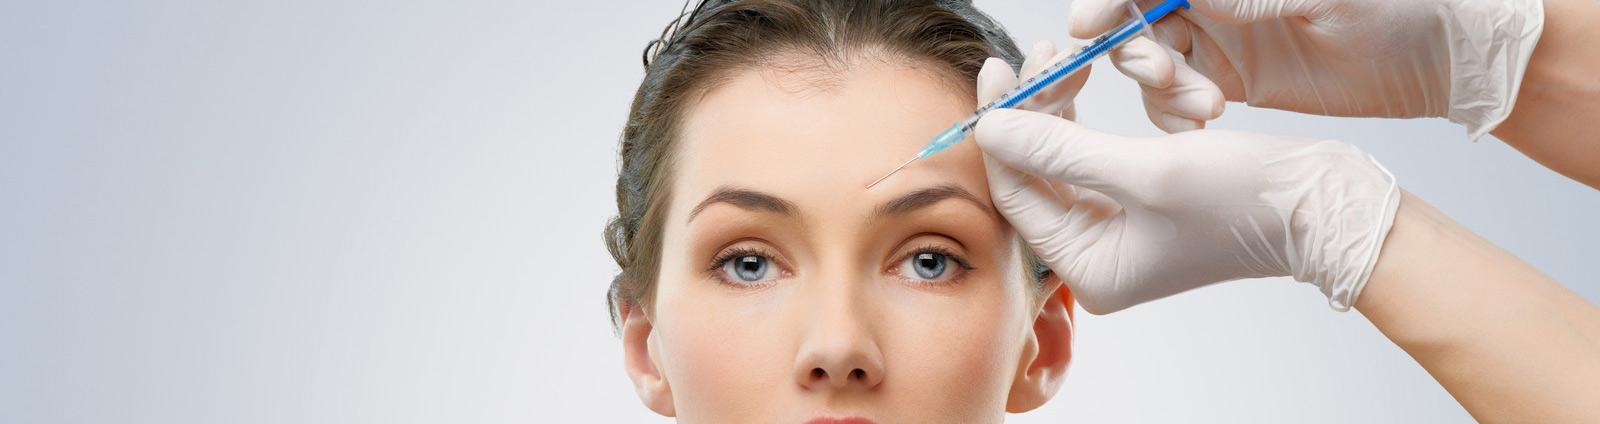 botox and dermal injections